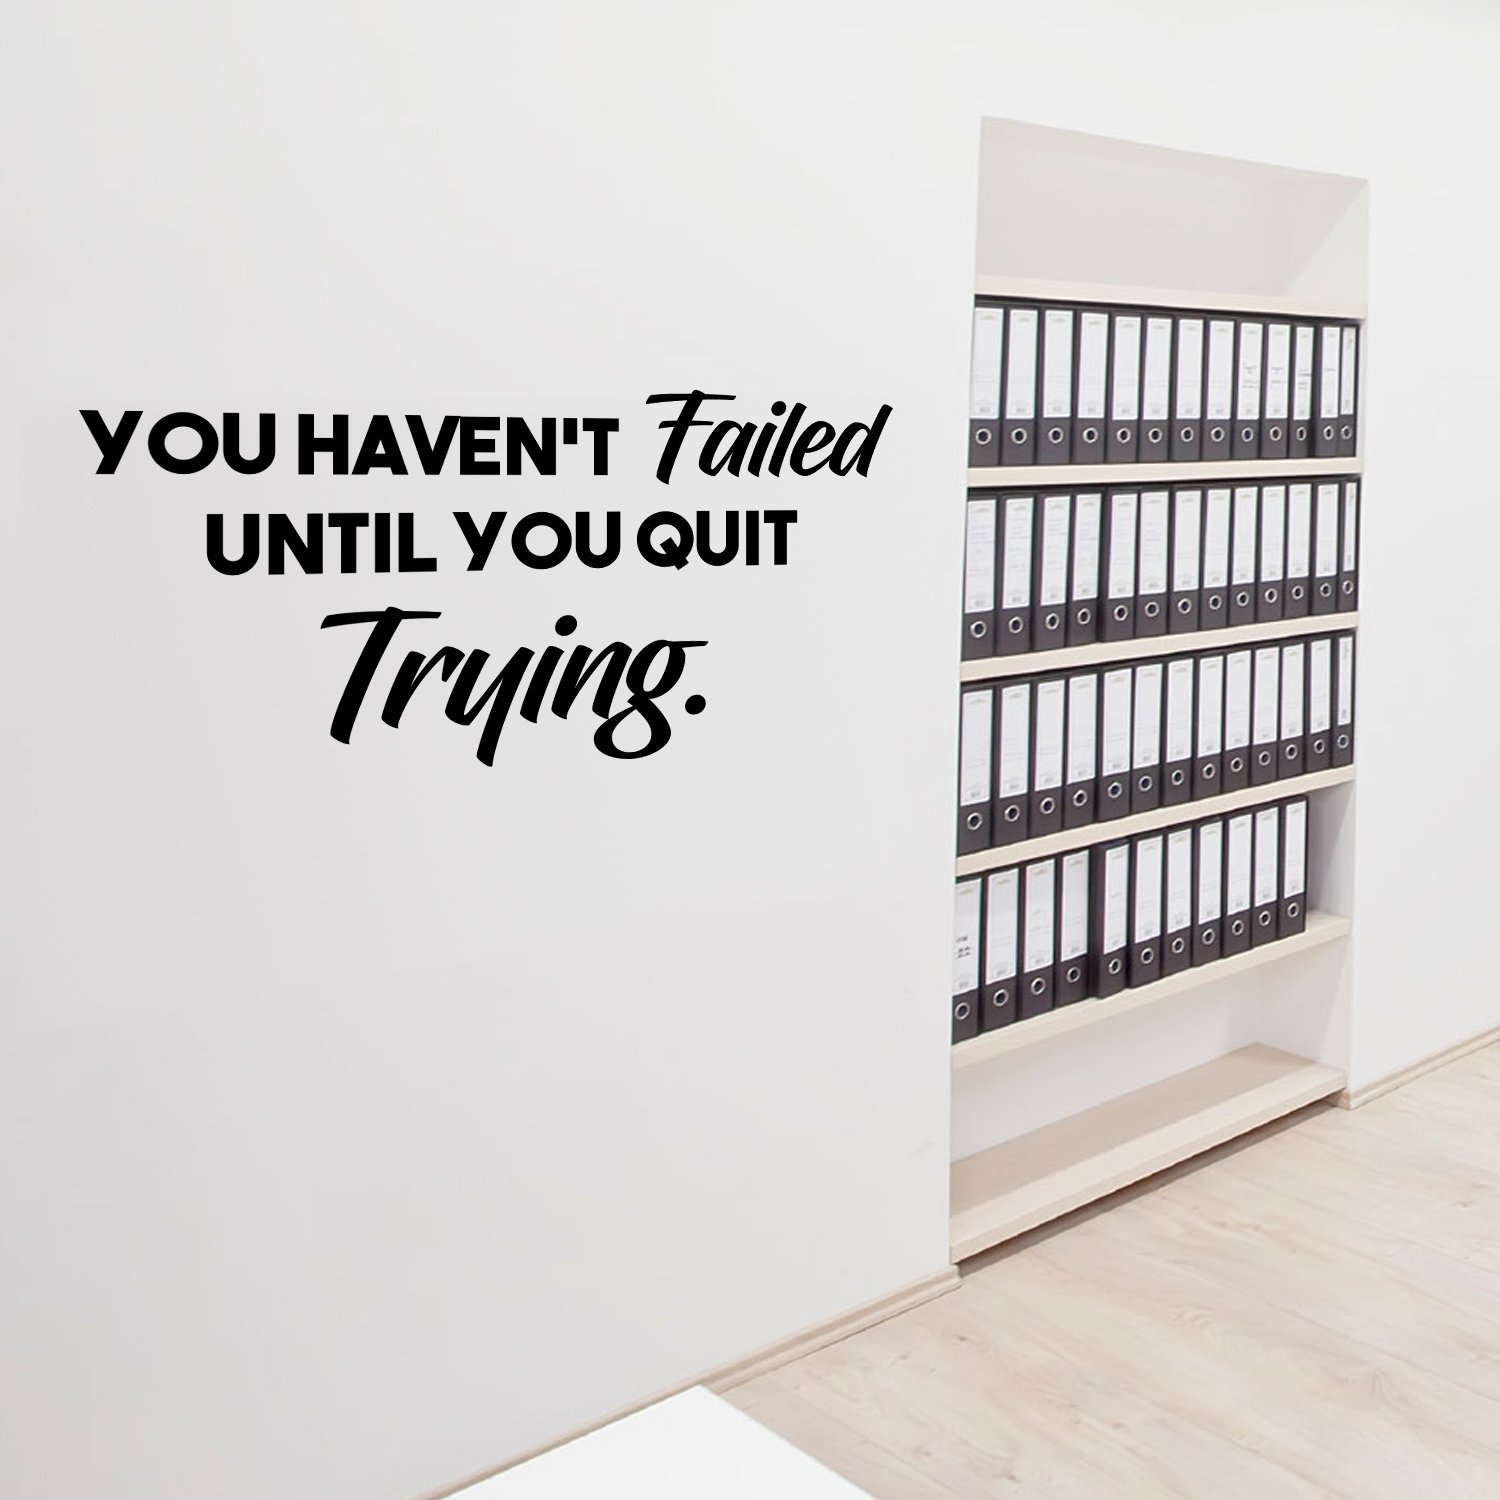 Wall Art Vinyl Decal - You Haven't Failed Until You Quit Trying - Inspirational Life Quote - 14'' x 28'' Home Decor Motivational Gym Fitness Work Office Sayings - Removable Sticker Decals